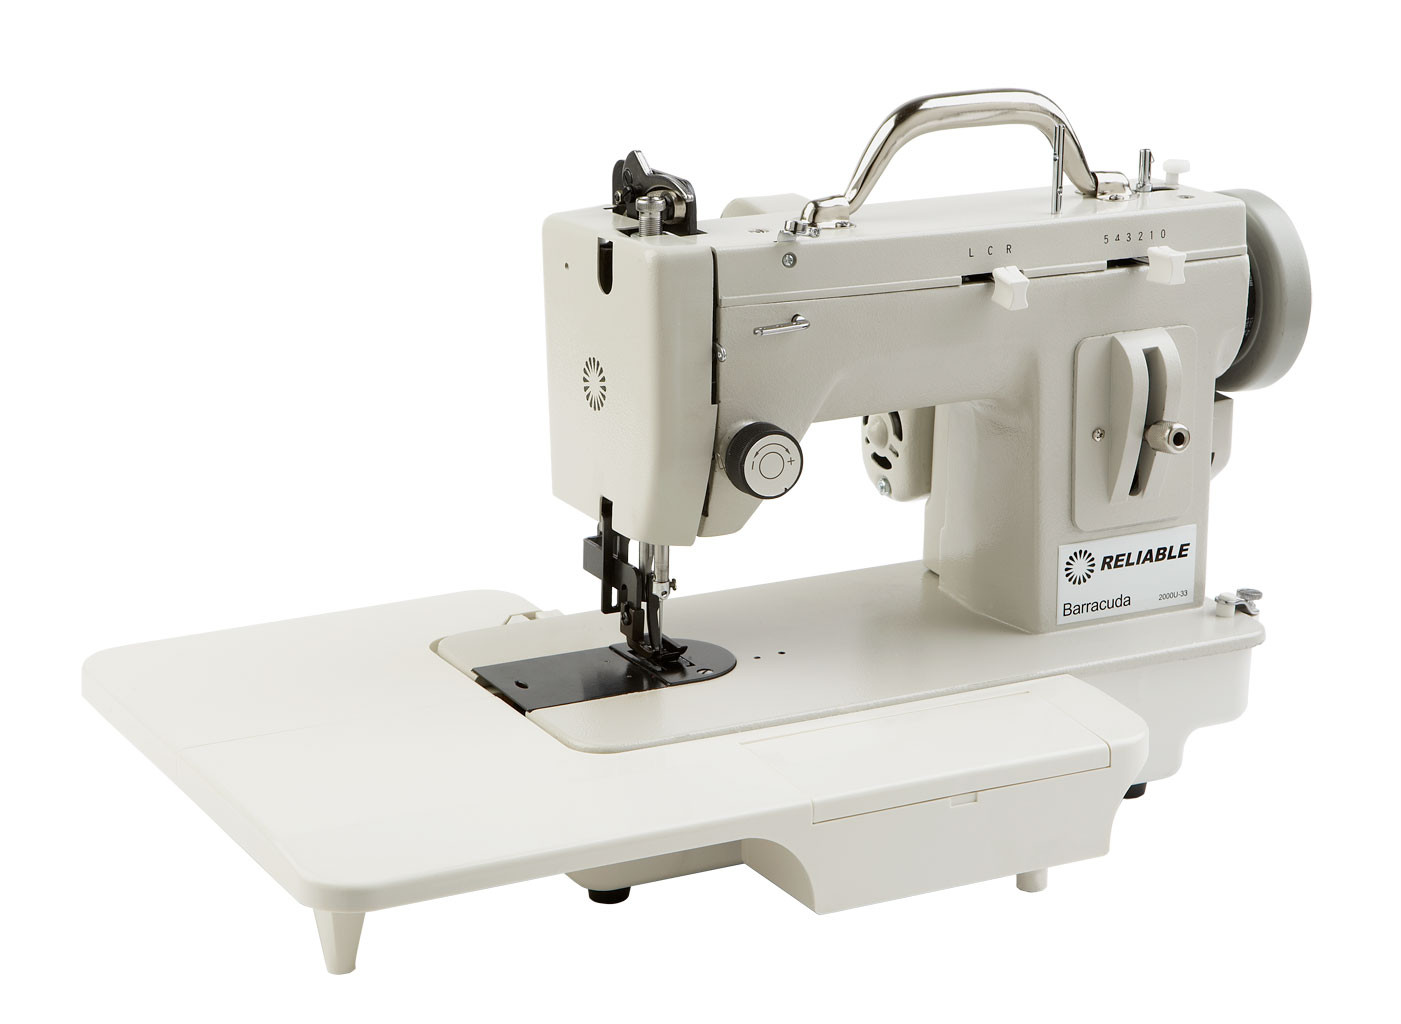 Lovely Reliable Barracuda 2000u 33 Portable Walking Foot & Zig Sewing Machine Foot Of Unique 40 Ideas Sewing Machine Foot